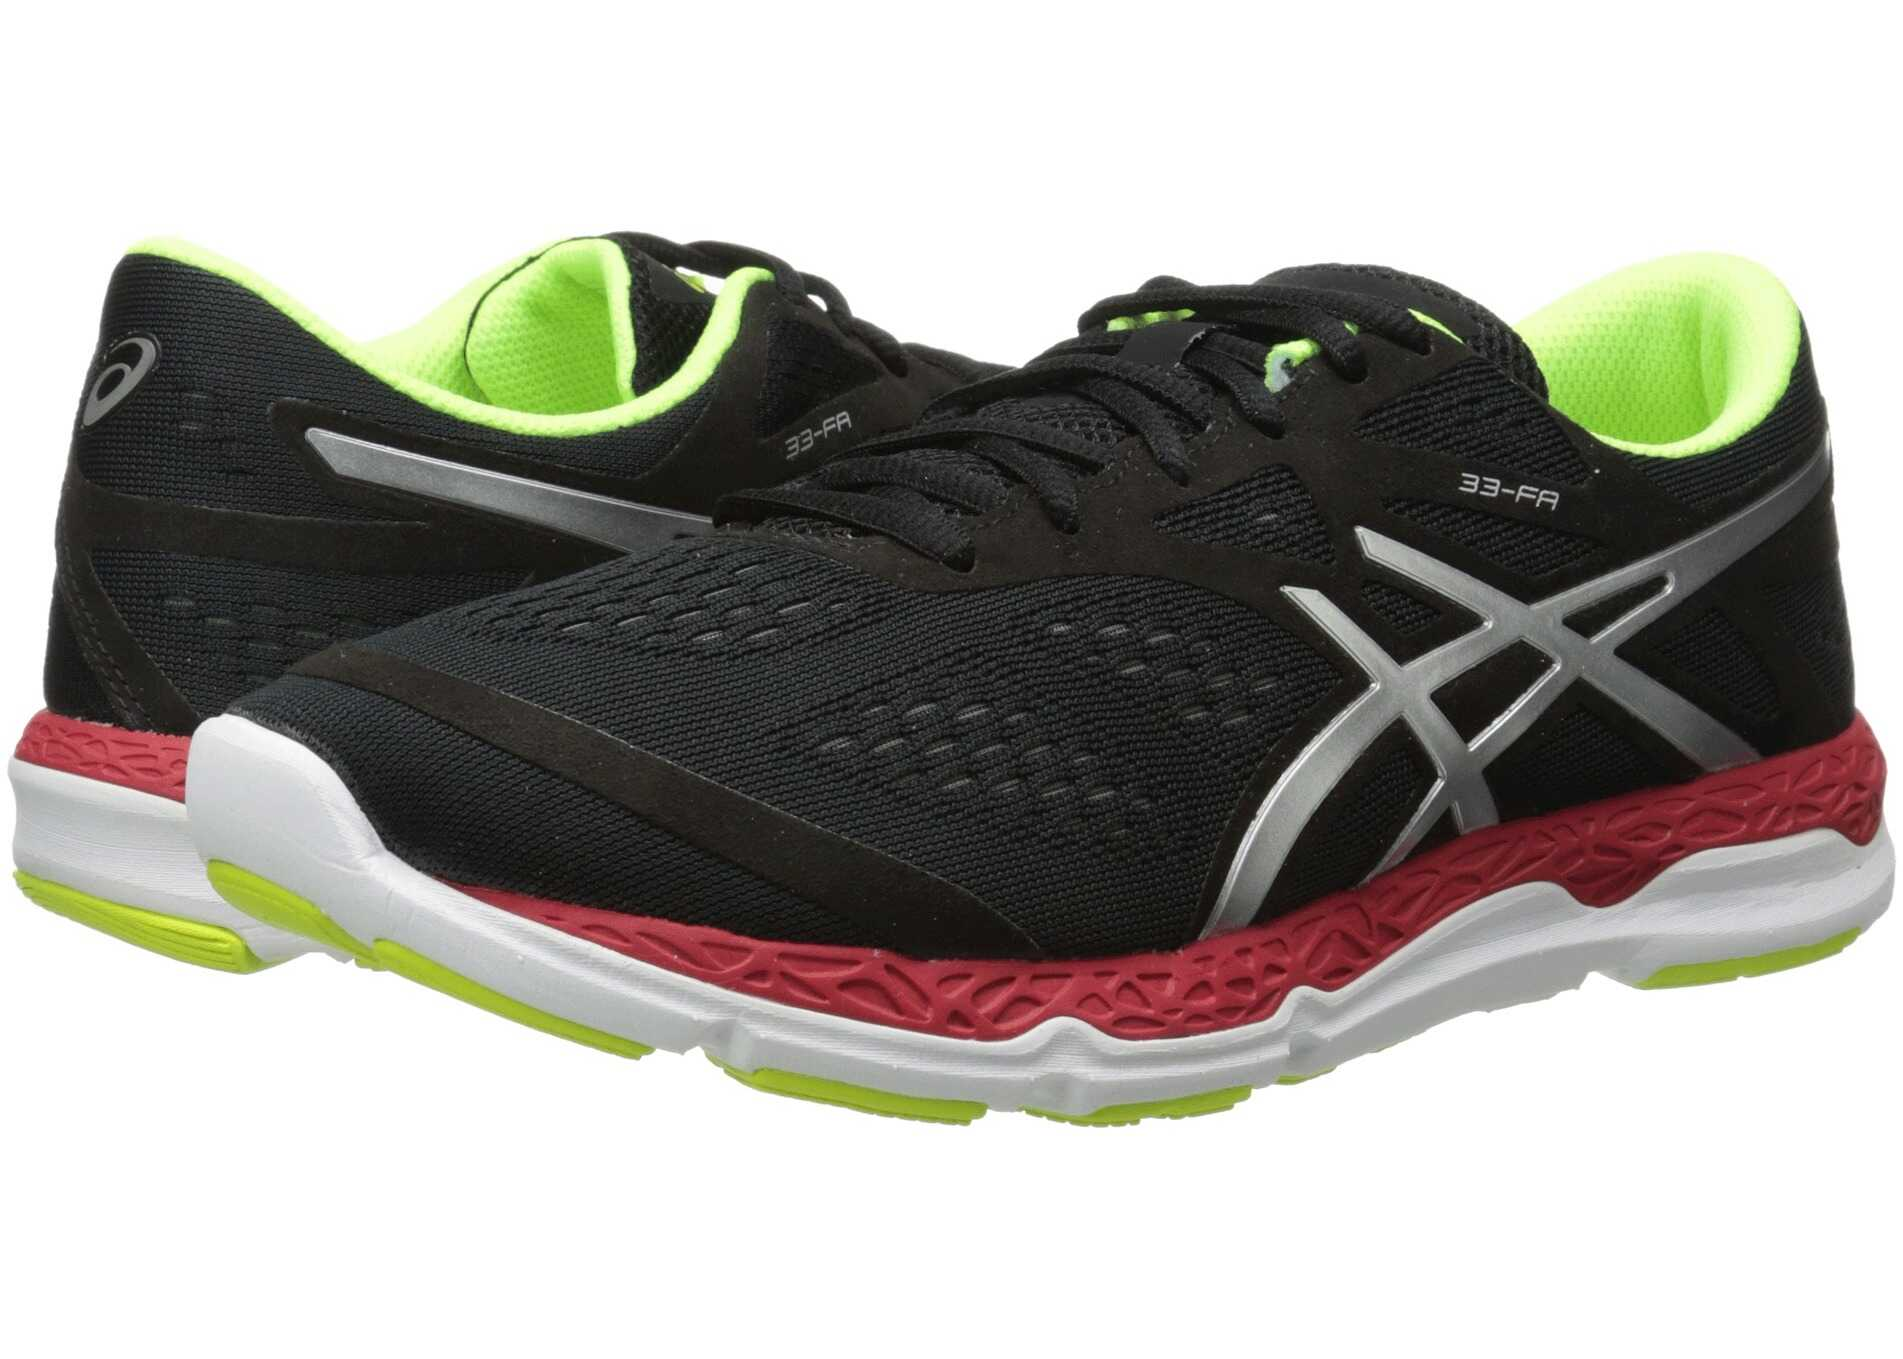 ASICS 33-FA™ Onyx/Flash Yellow/Chinese Red